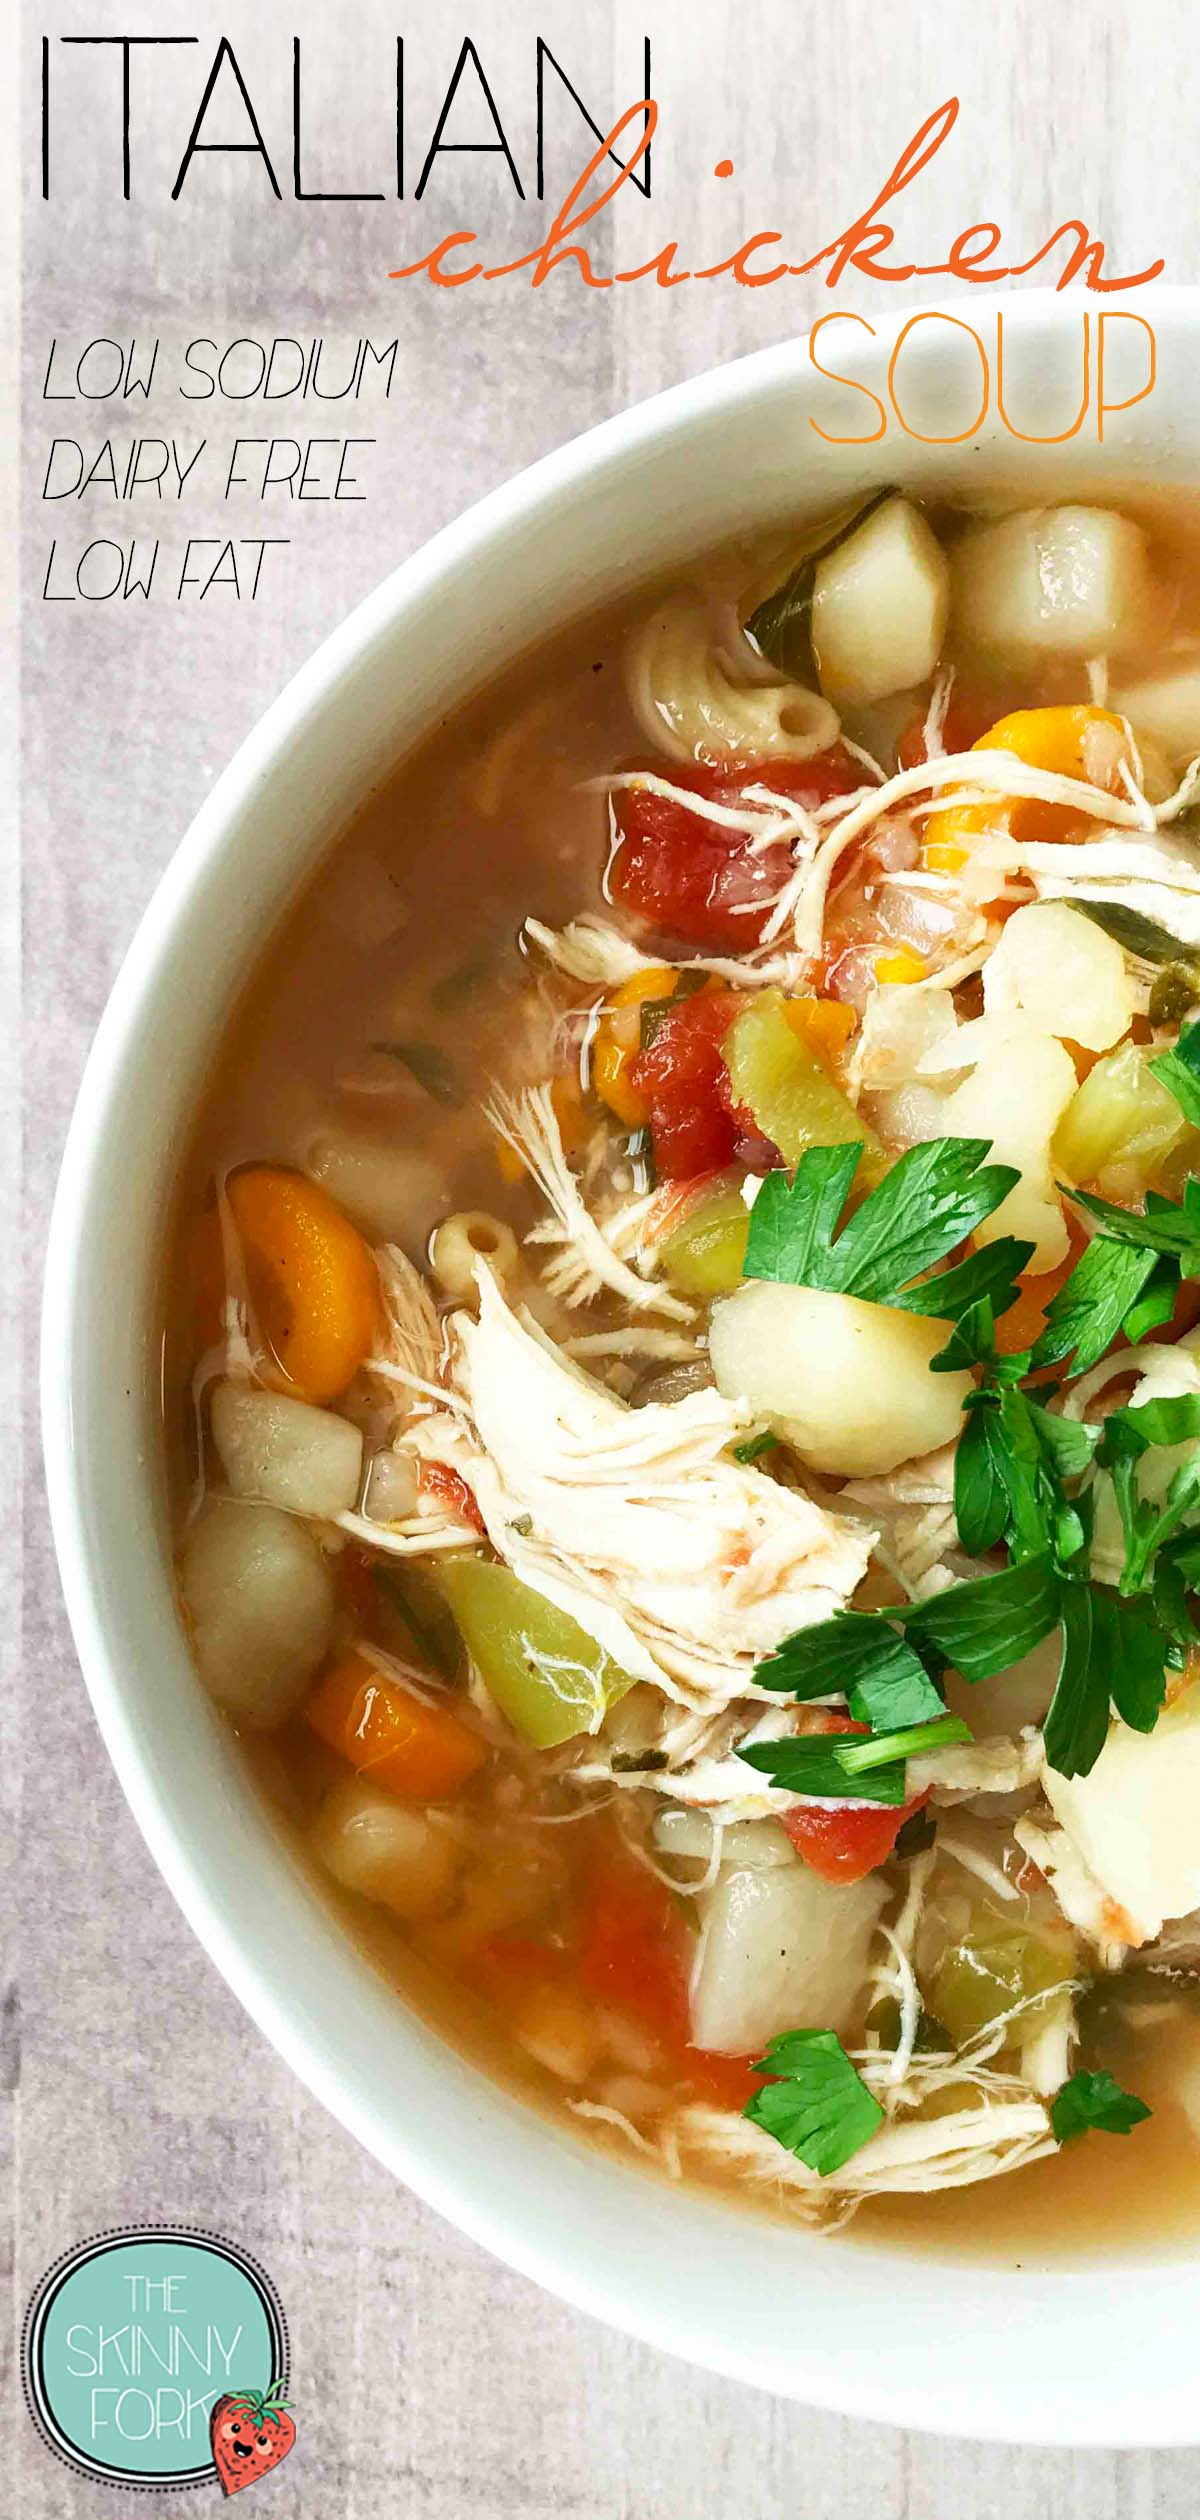 italian-chicken-soup-pin.jpg